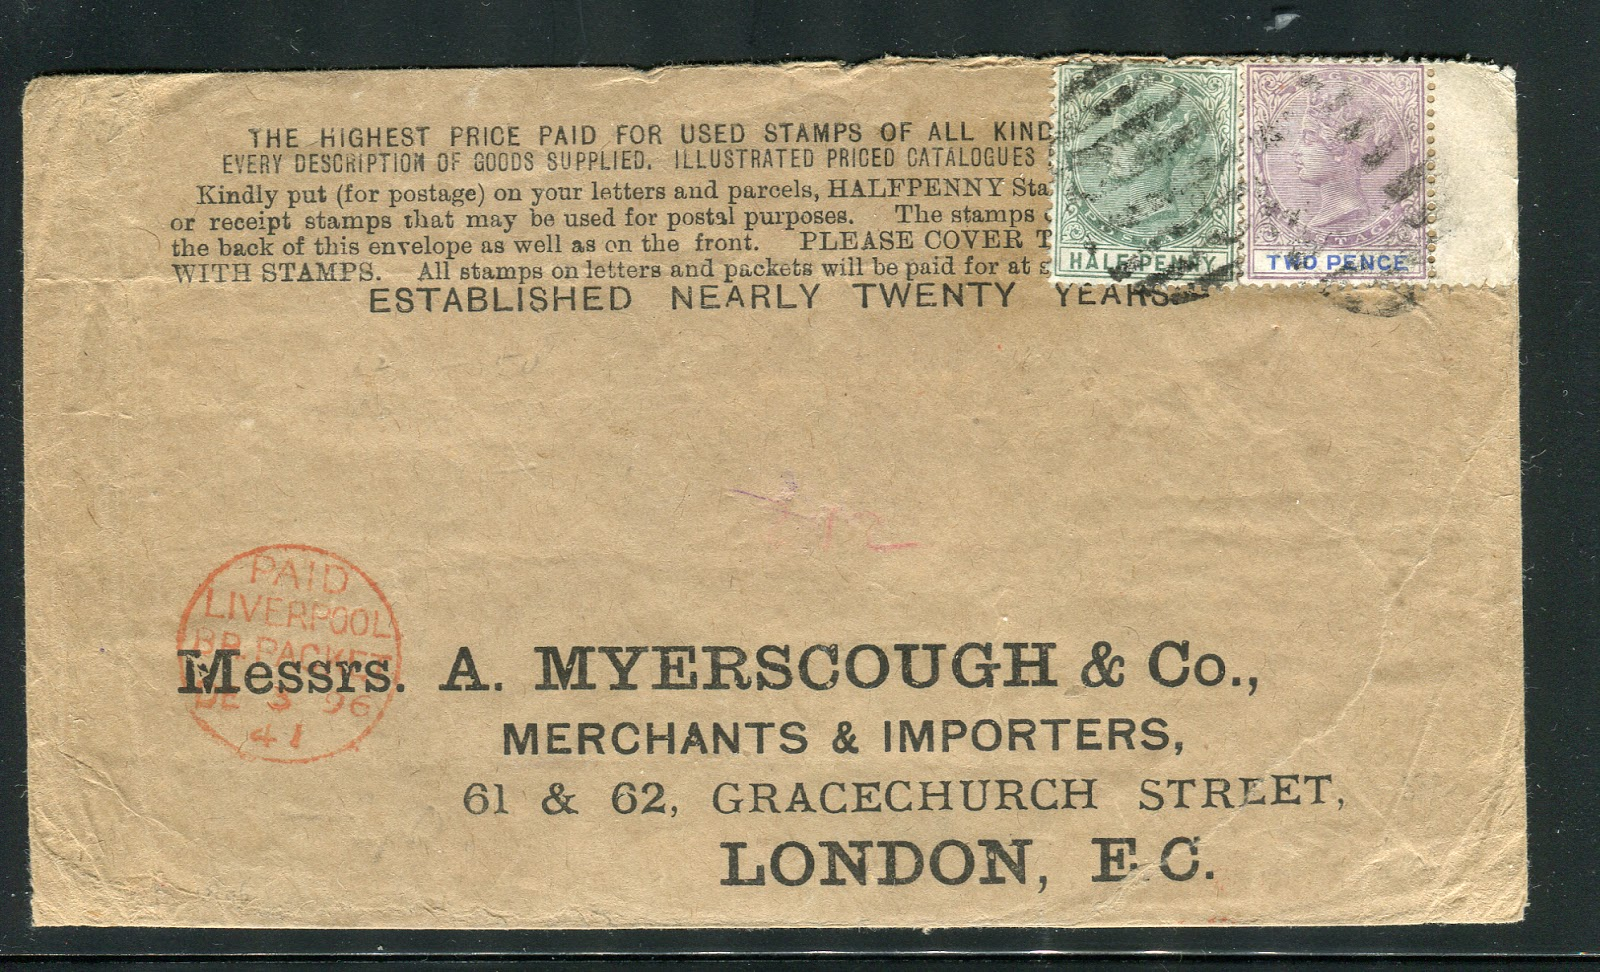 Here Is An Interesting And Early Business Reply Envelope With What Appears To Be A Stamp Dealers Advertisement At The Top